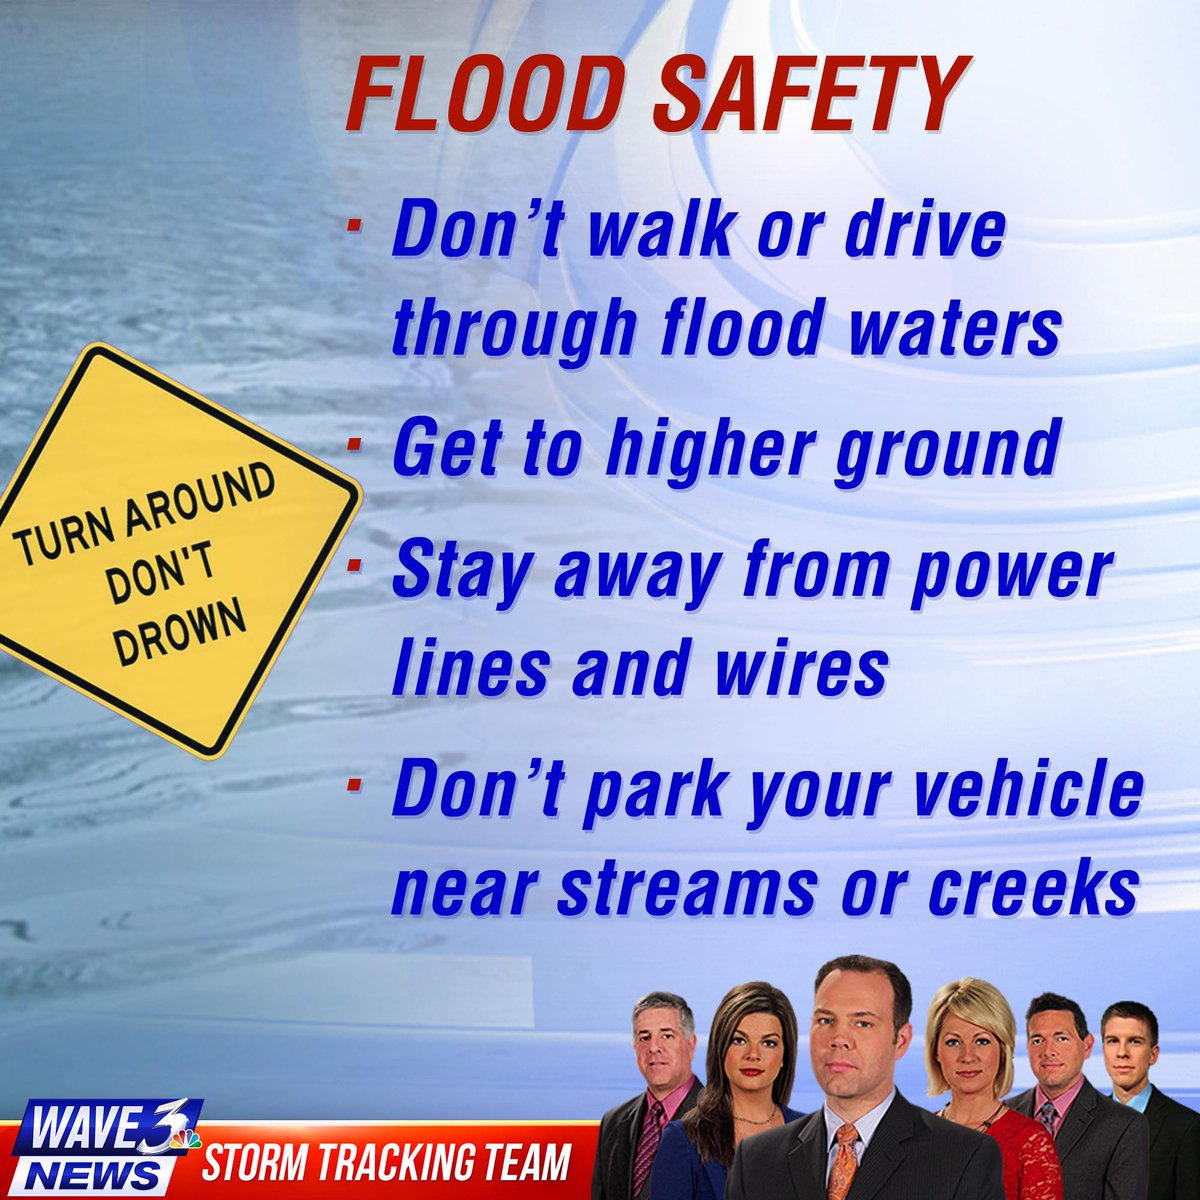 Rt these #flood safety tips! next on #wave3news, we'll ...